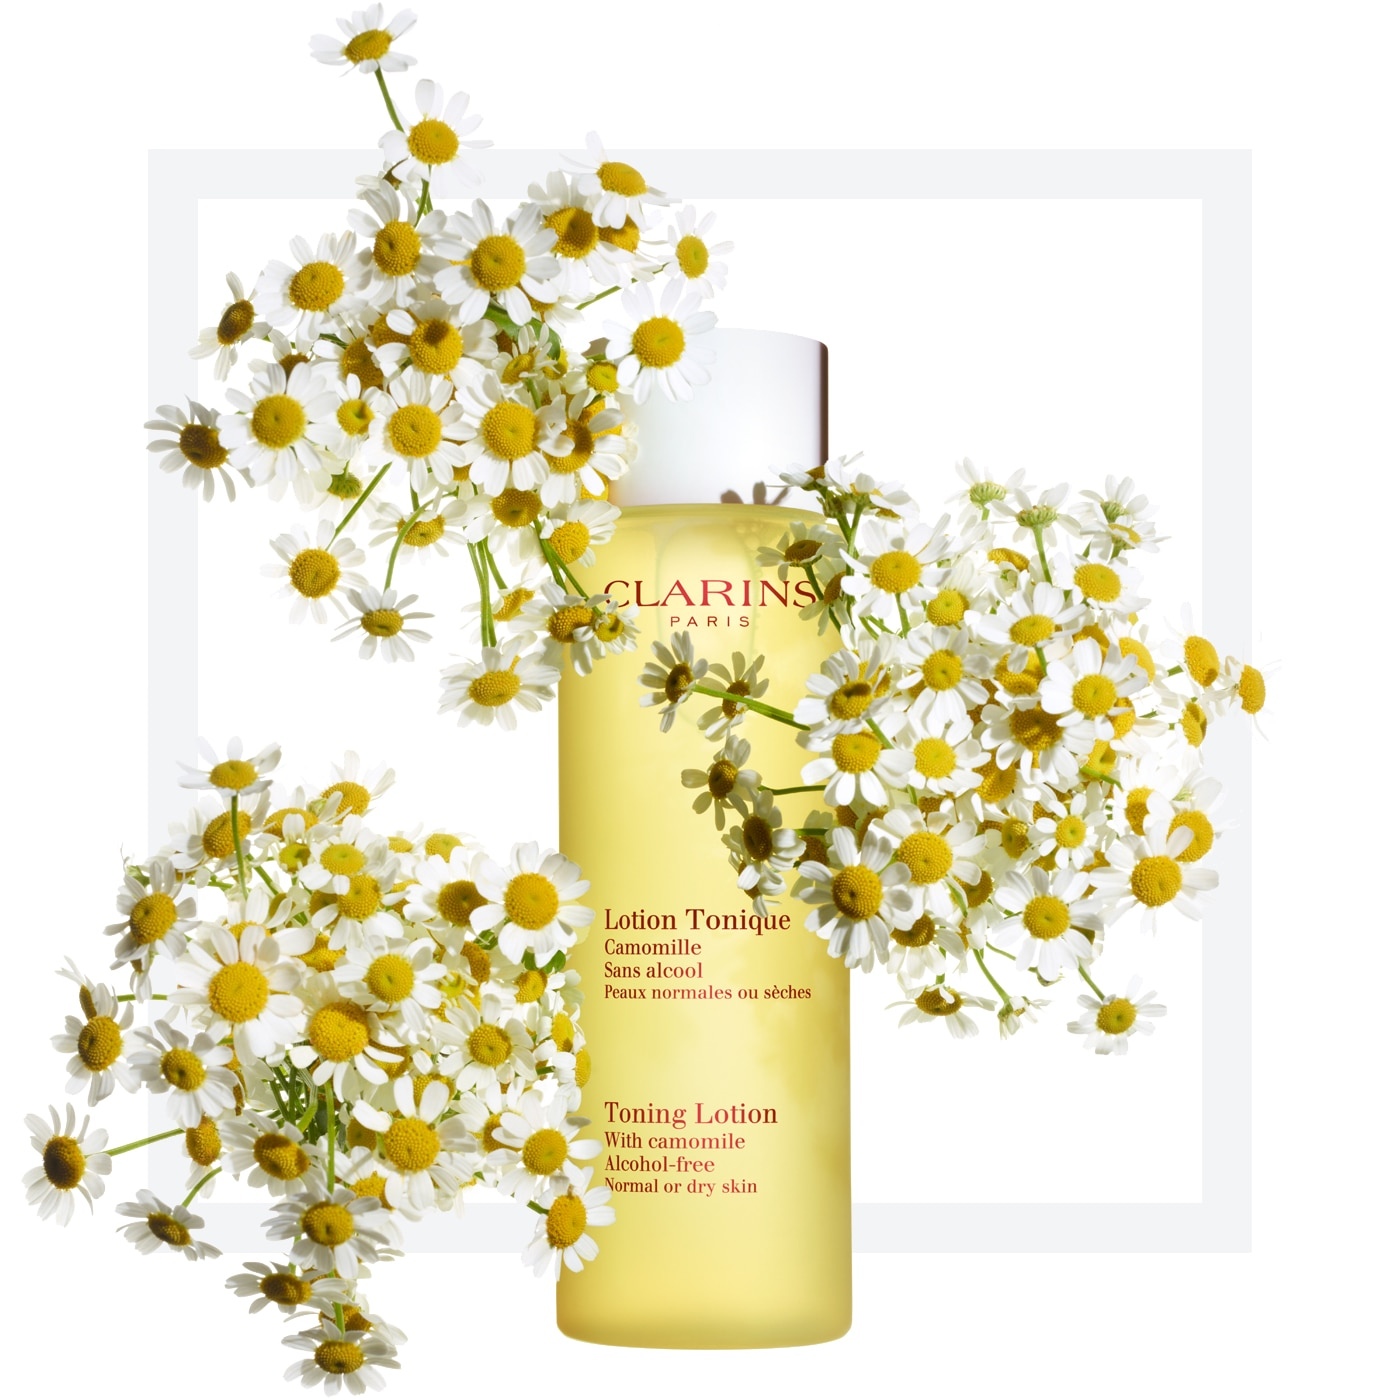 Camomile clipart small Lotion Clarins Toning%20Lotion%20With%20Camomile oily Lotion